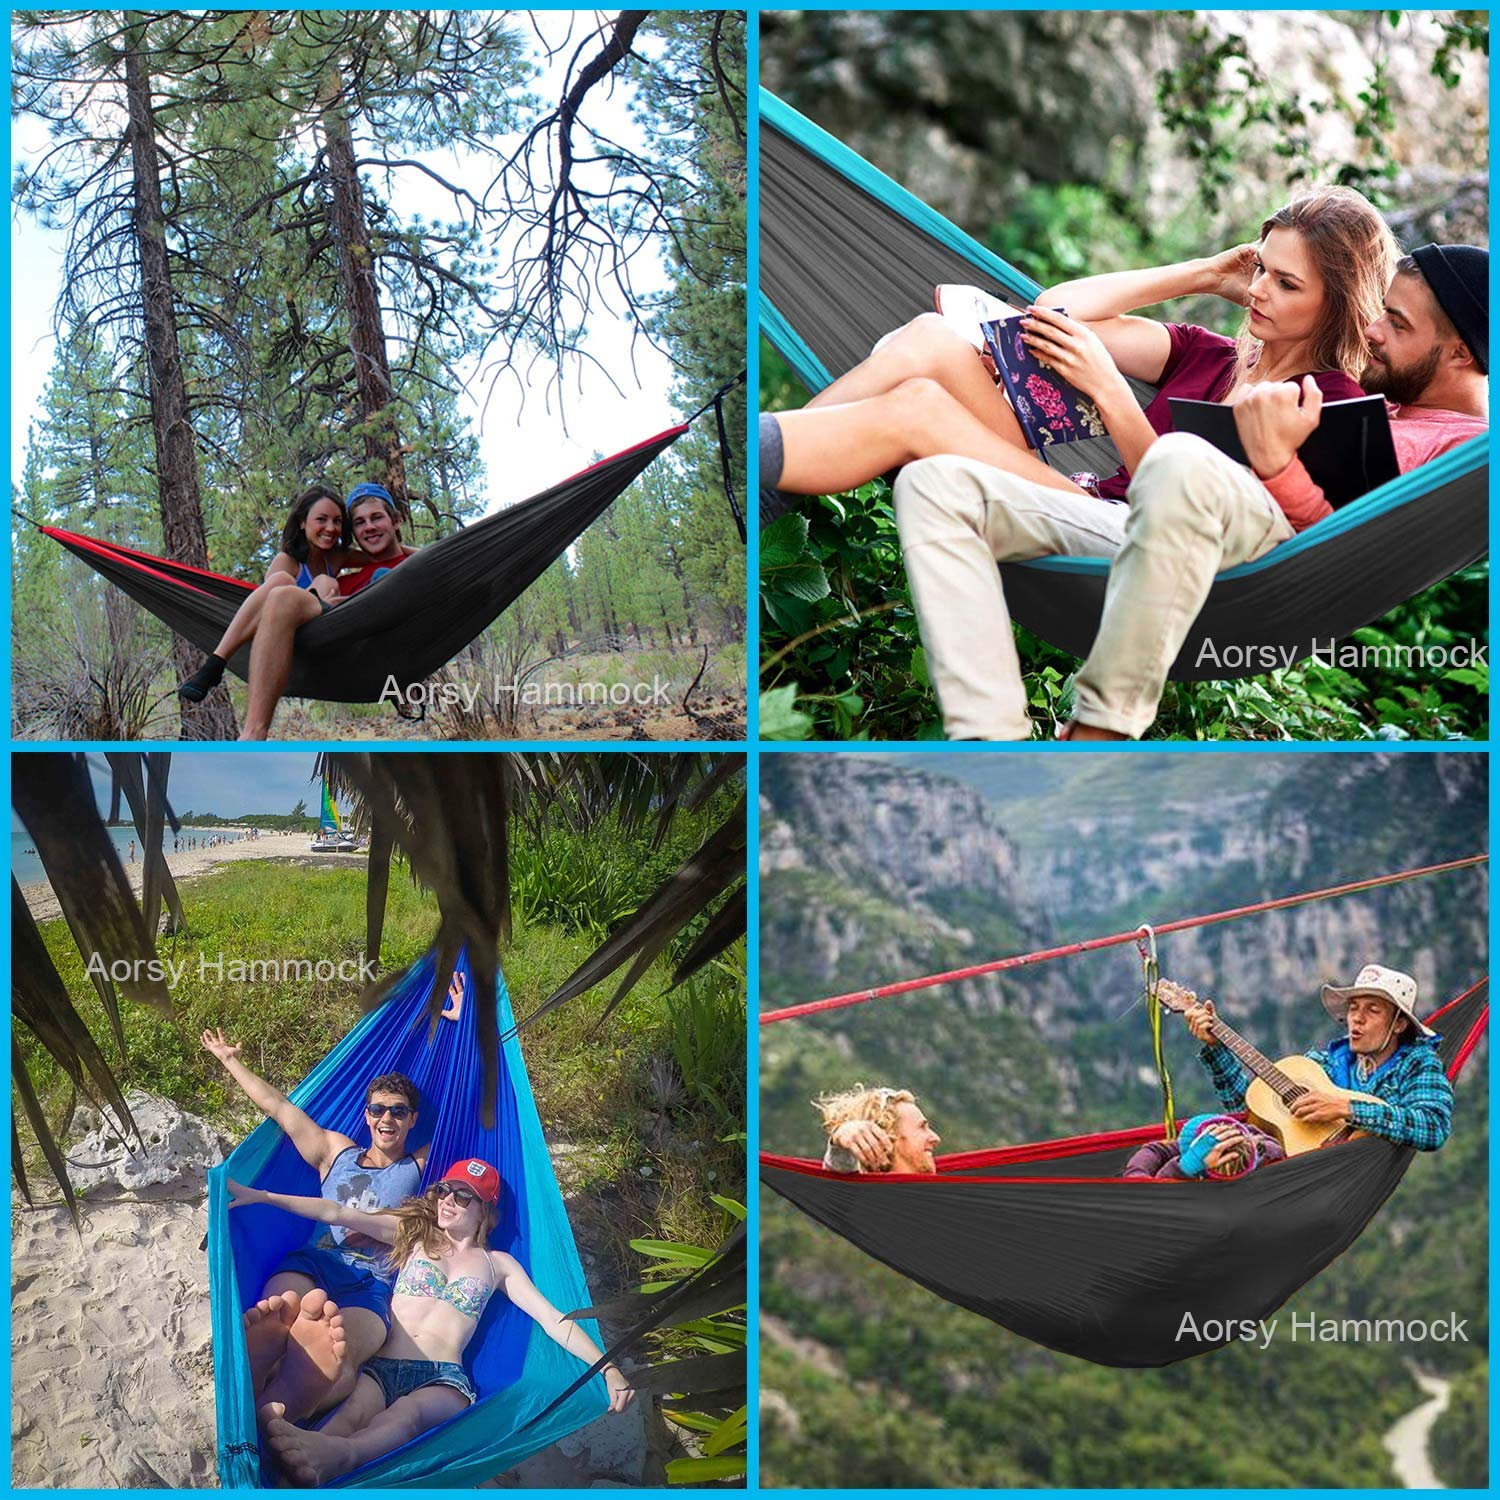 AORSY Camping Hammock XL Portable Hammock for 2 Person Backpacking Travel Lightweight Hammock Single /& Double Parachute Nylon Waterproof Foldable Hiking Hammock with 2 10ft Straps Heavy Duty